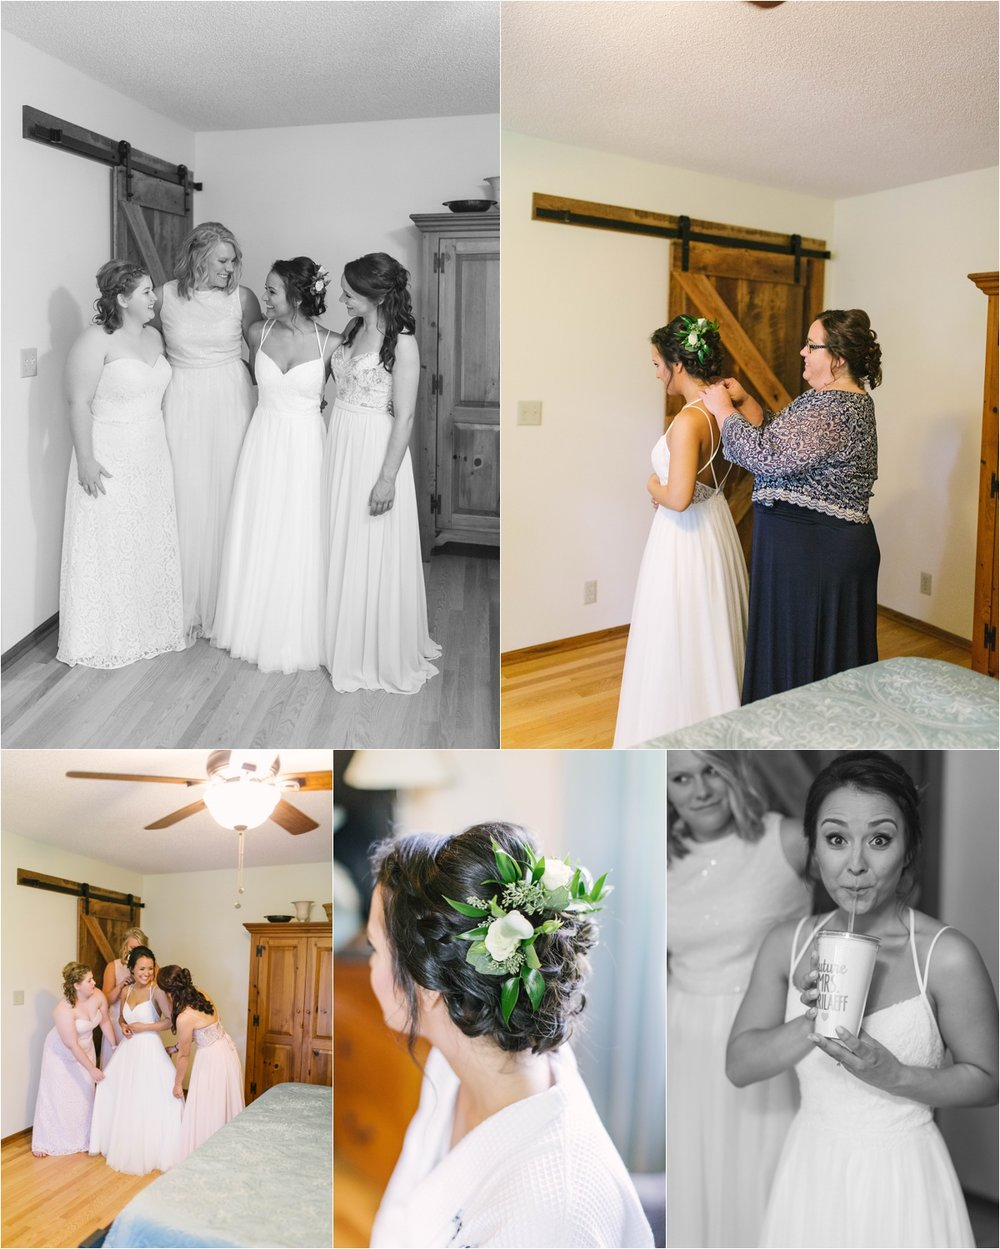 Stephanie Lynn Photography- Strilaeff Wedding, countryside wedding- Glenville, MN_0032.jpg